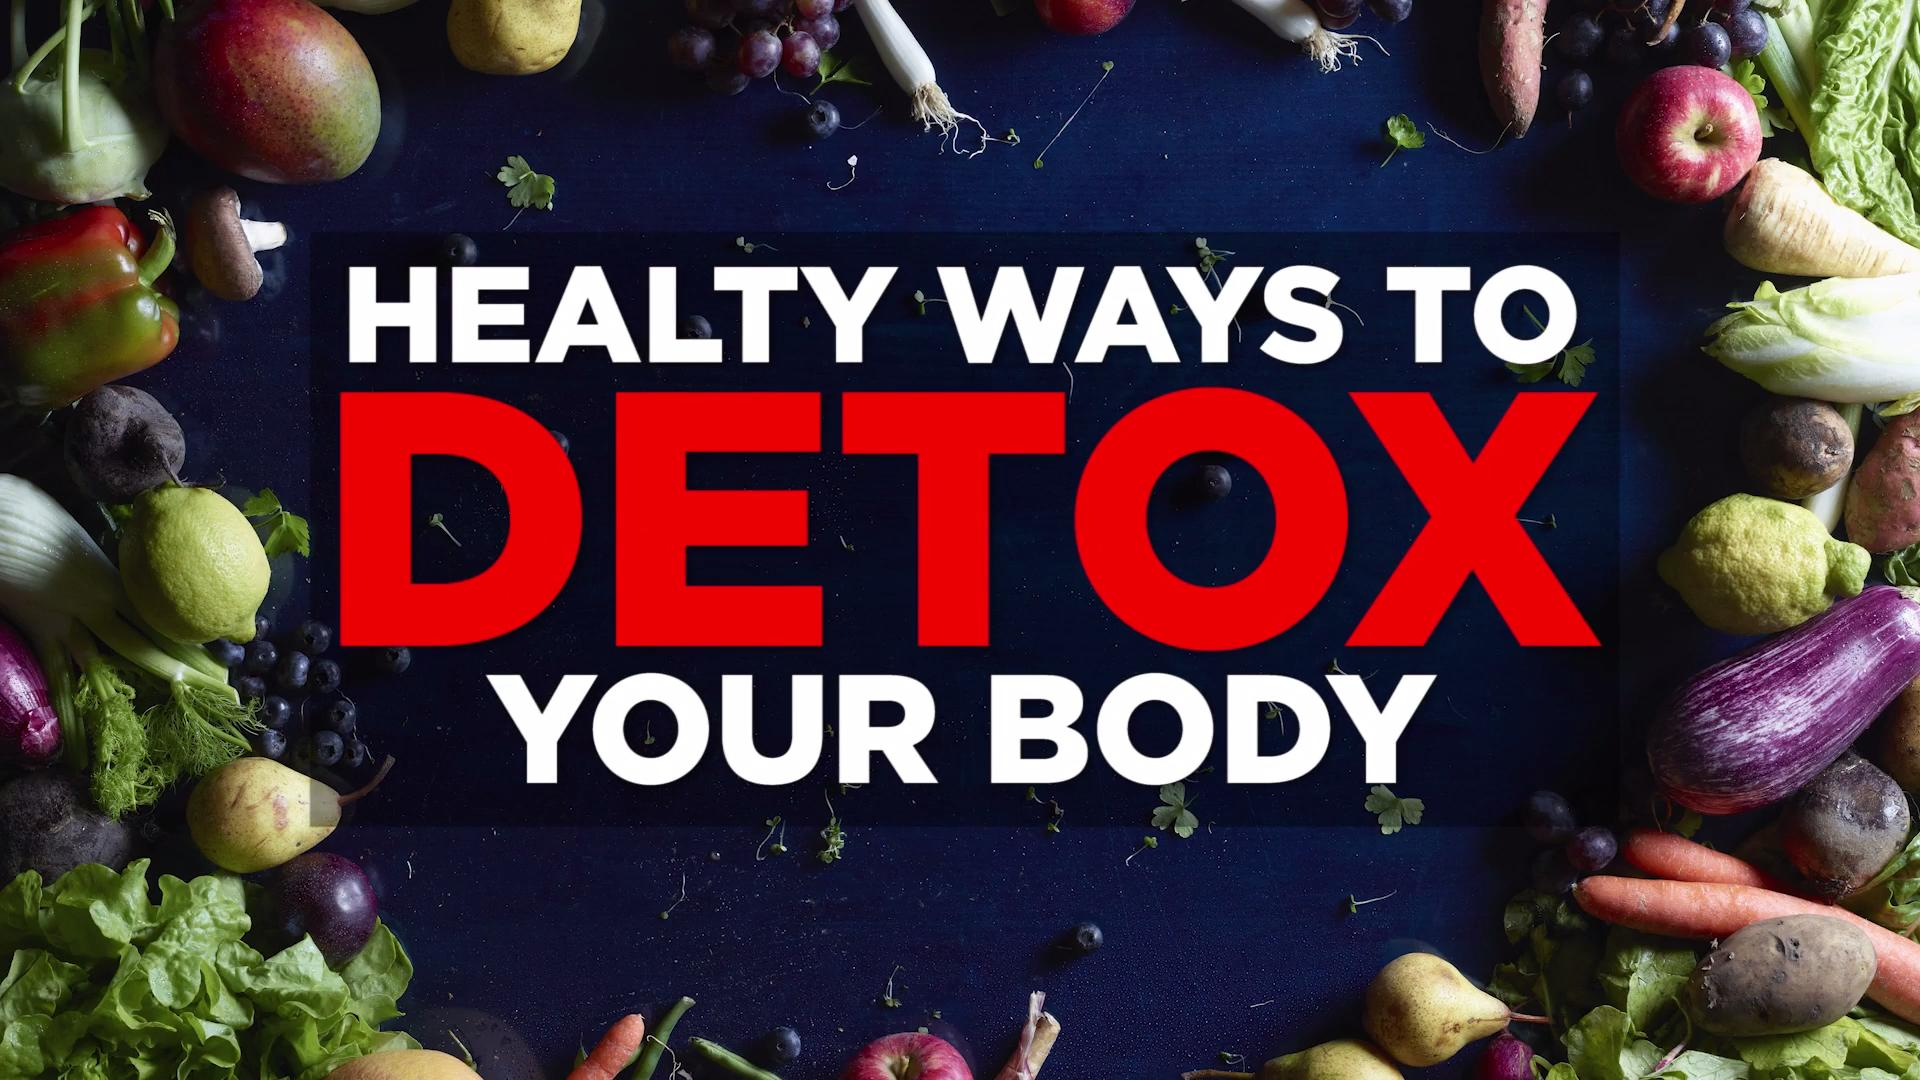 Detox Tea: Safety, Side Effects, and More - Health